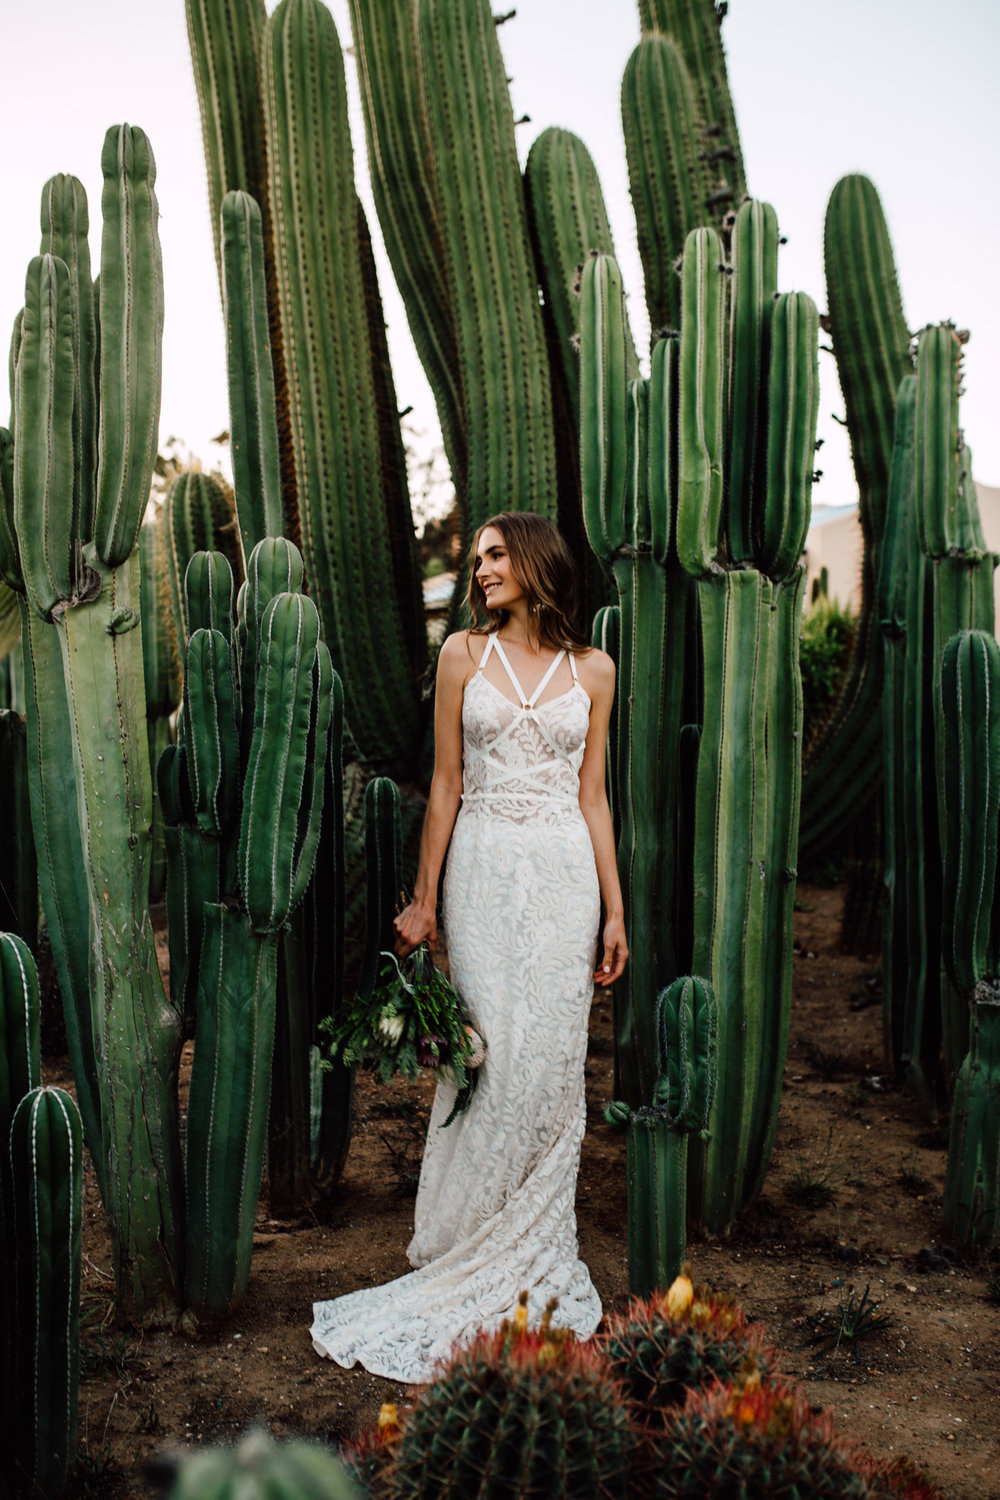 Cape-Town-Pia-Anna-Christian-Wedding-Photography-South-Africa-Bride-Cactus-12.jpg